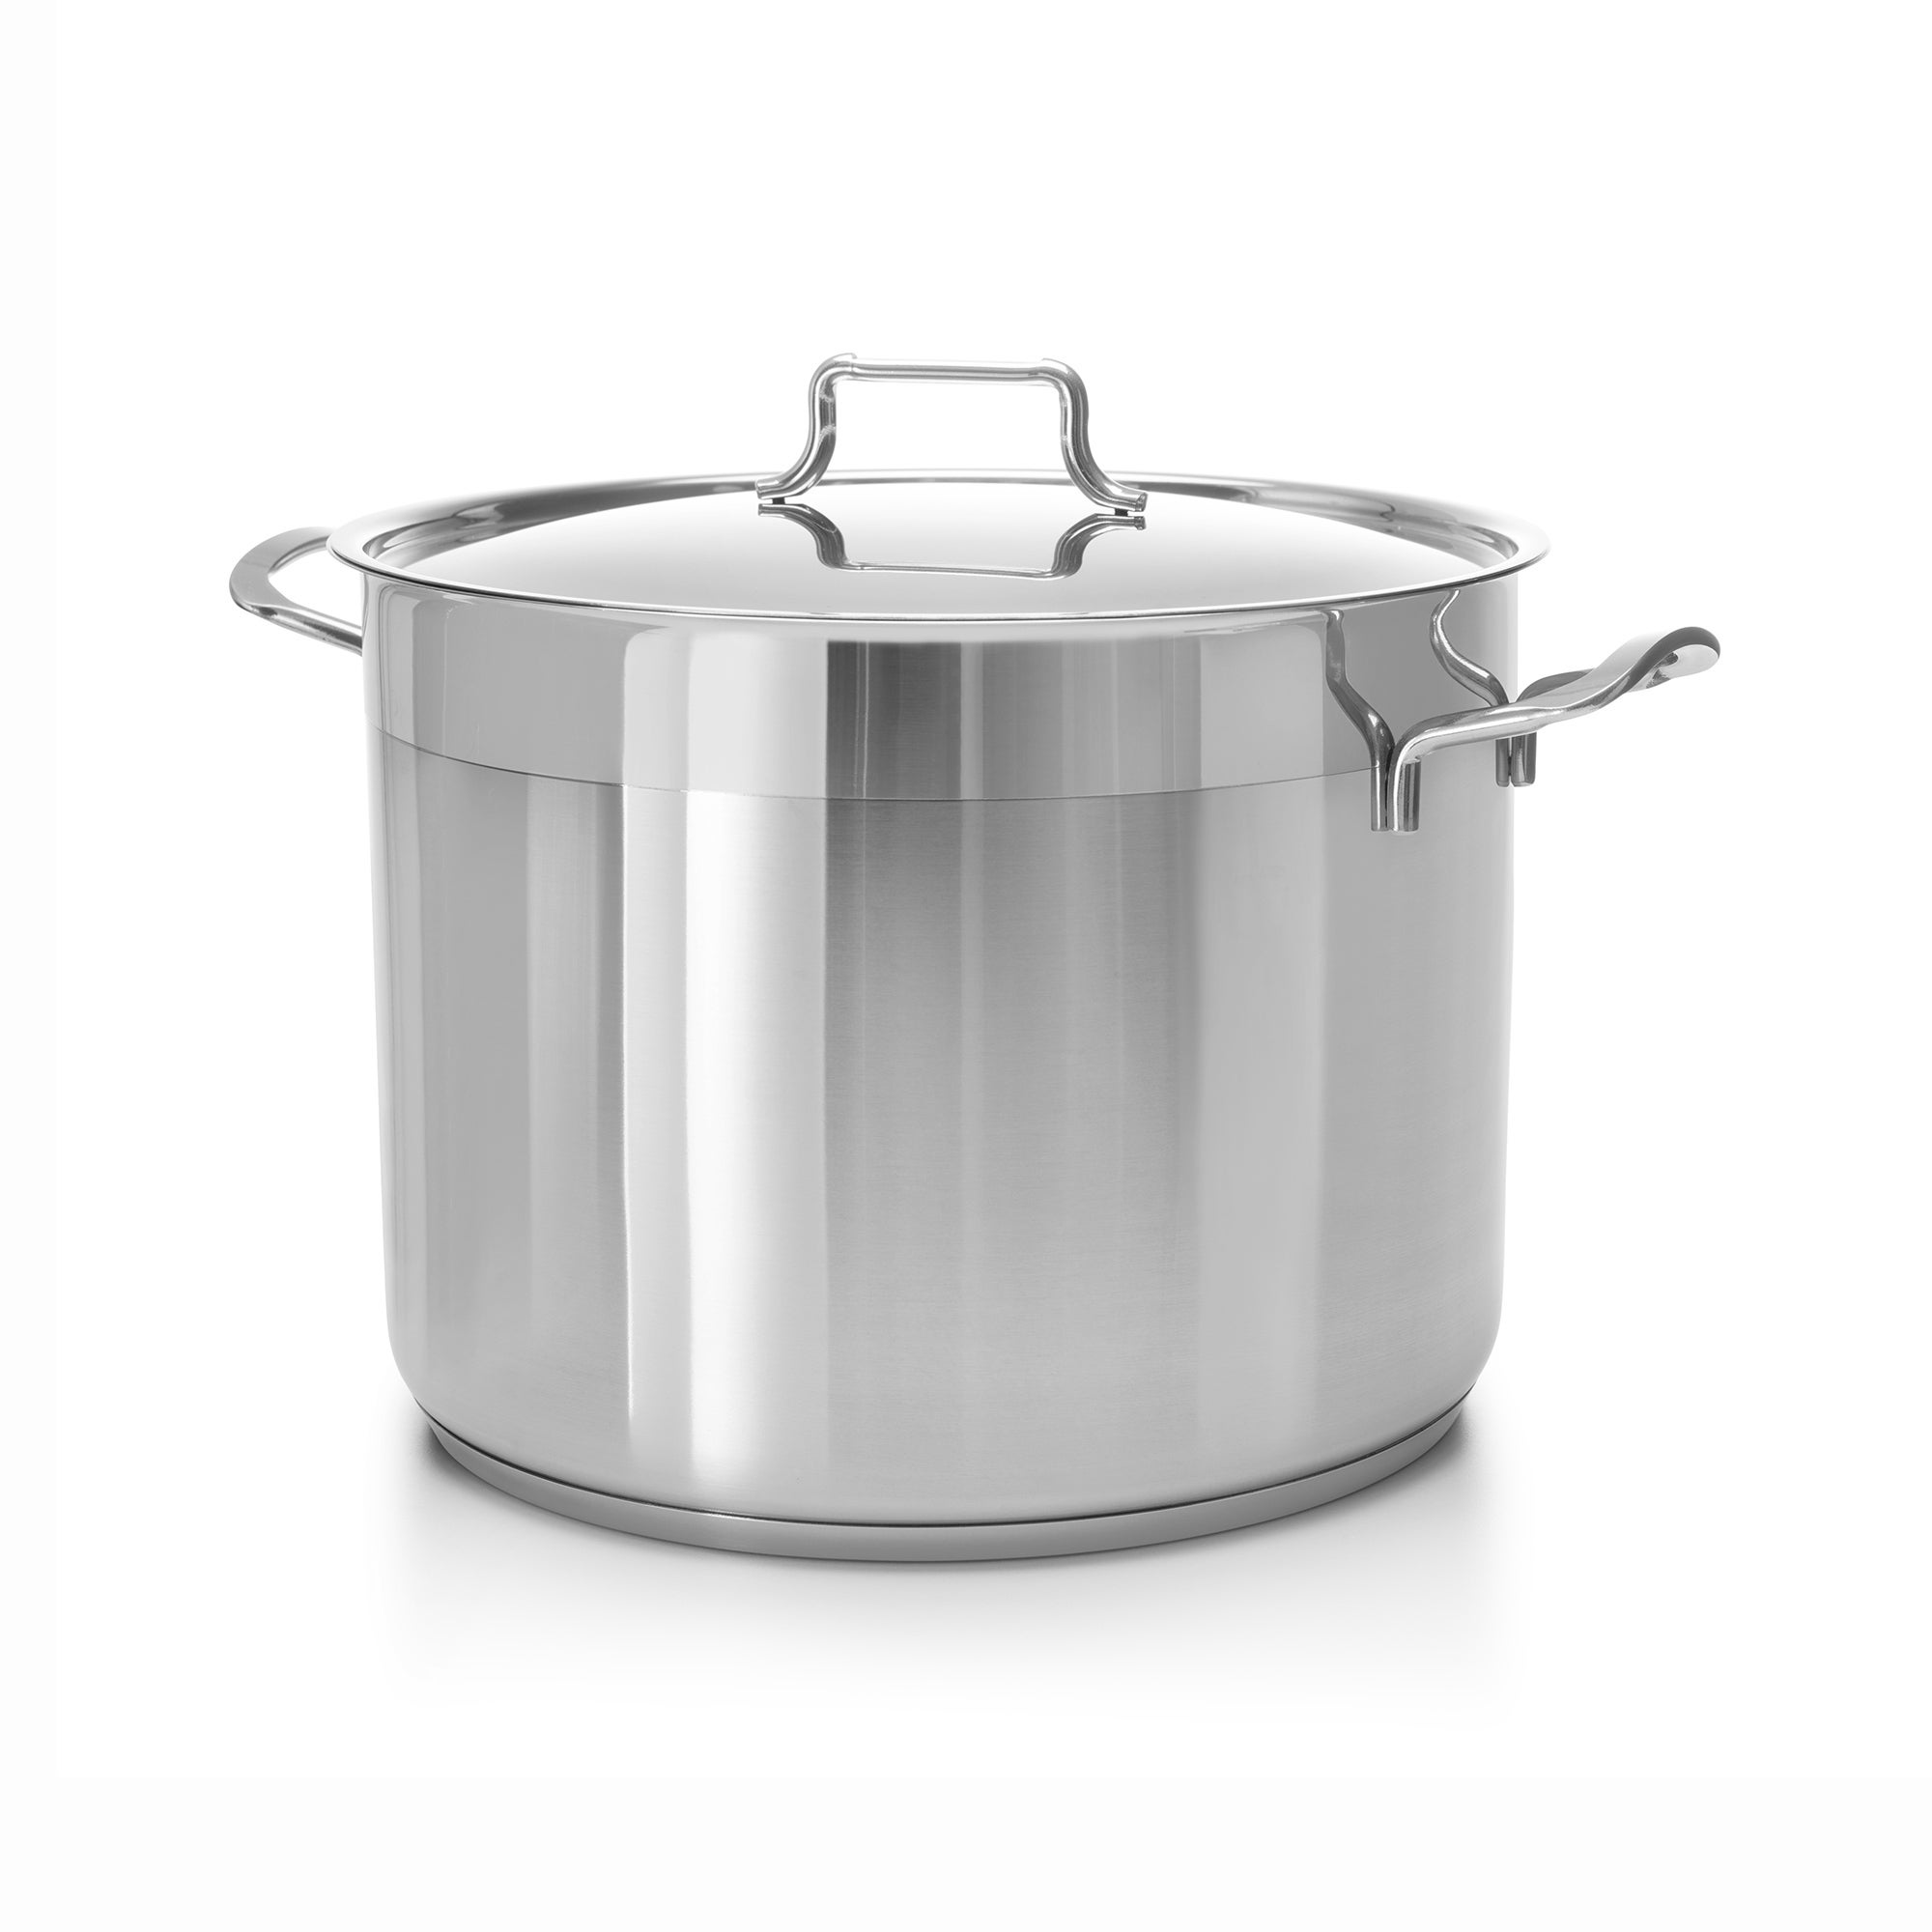 Hascevher Classic 18 10 Stainless Steel Stockpot Covered Cookware Induction Compatible Oven Safe 16 Quart Overstock 24314202